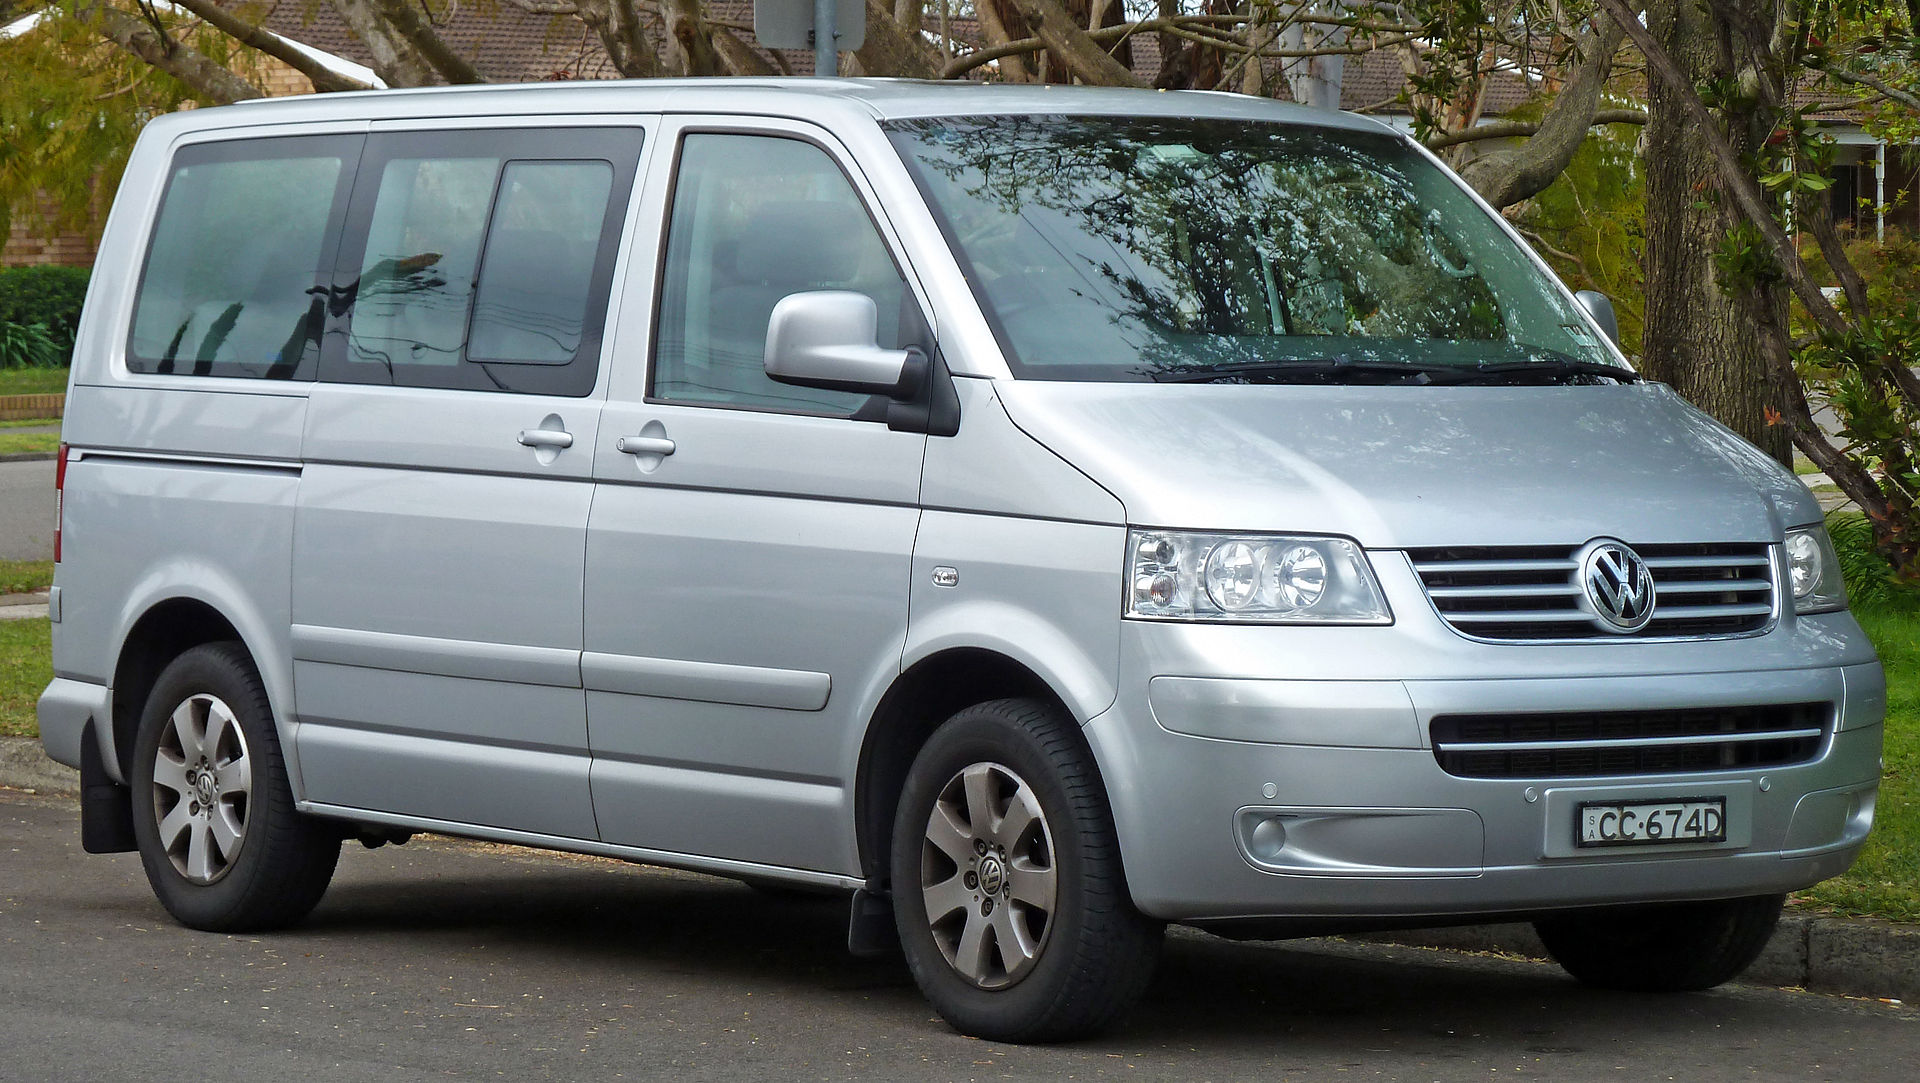 volkswagen transporter t5 wikipedia. Black Bedroom Furniture Sets. Home Design Ideas